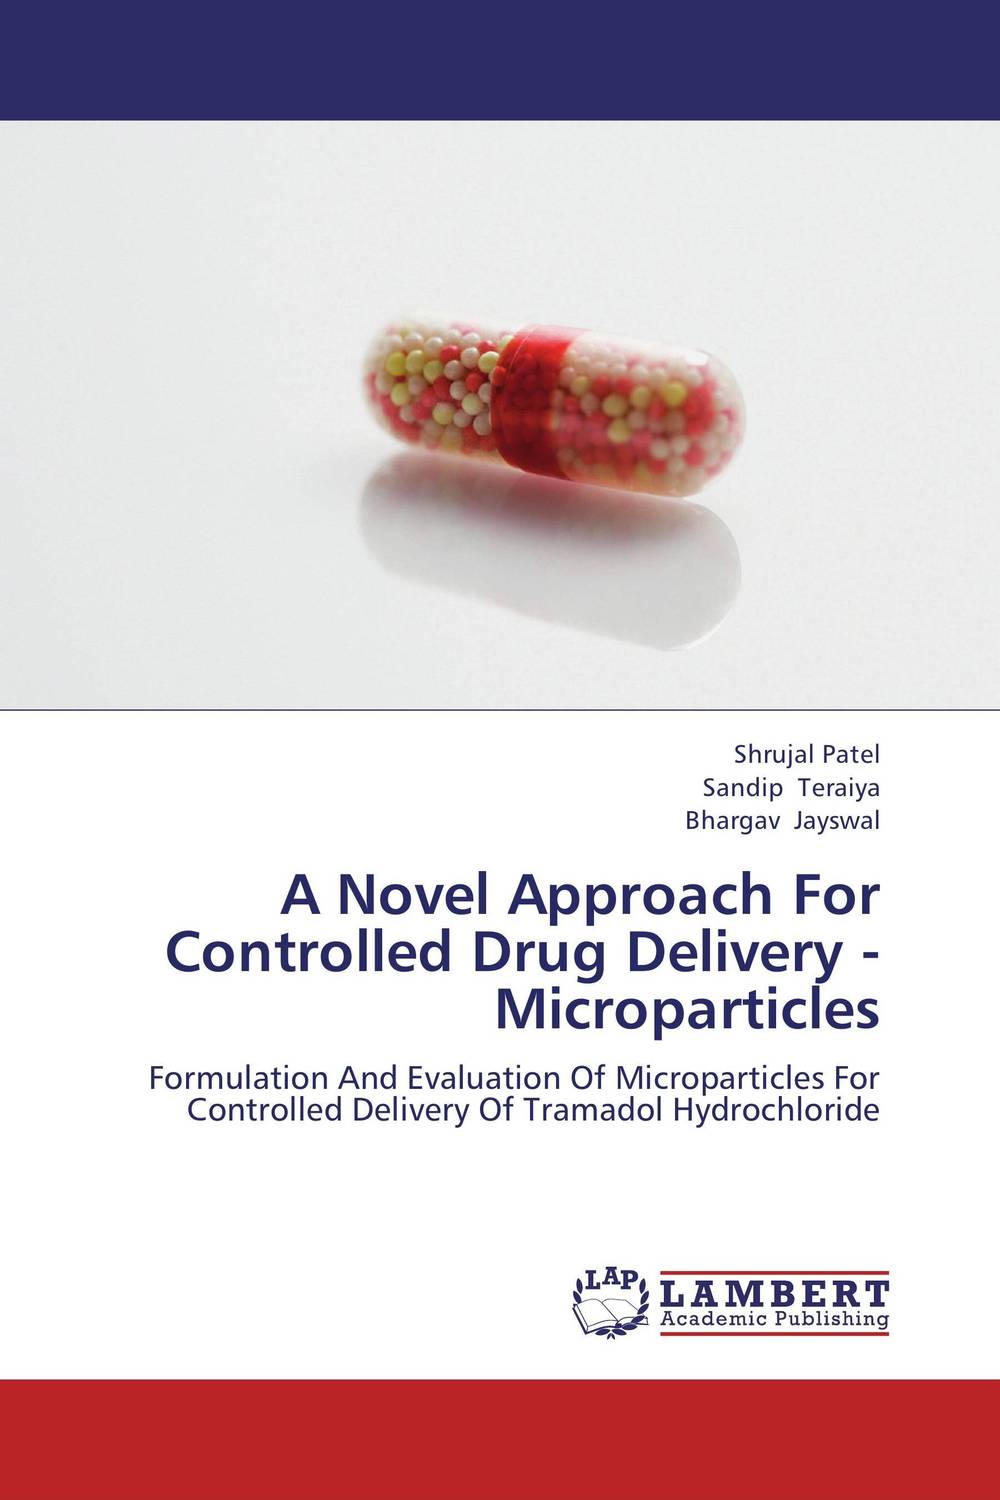 A Novel Approach For Controlled Drug Delivery - Microparticles